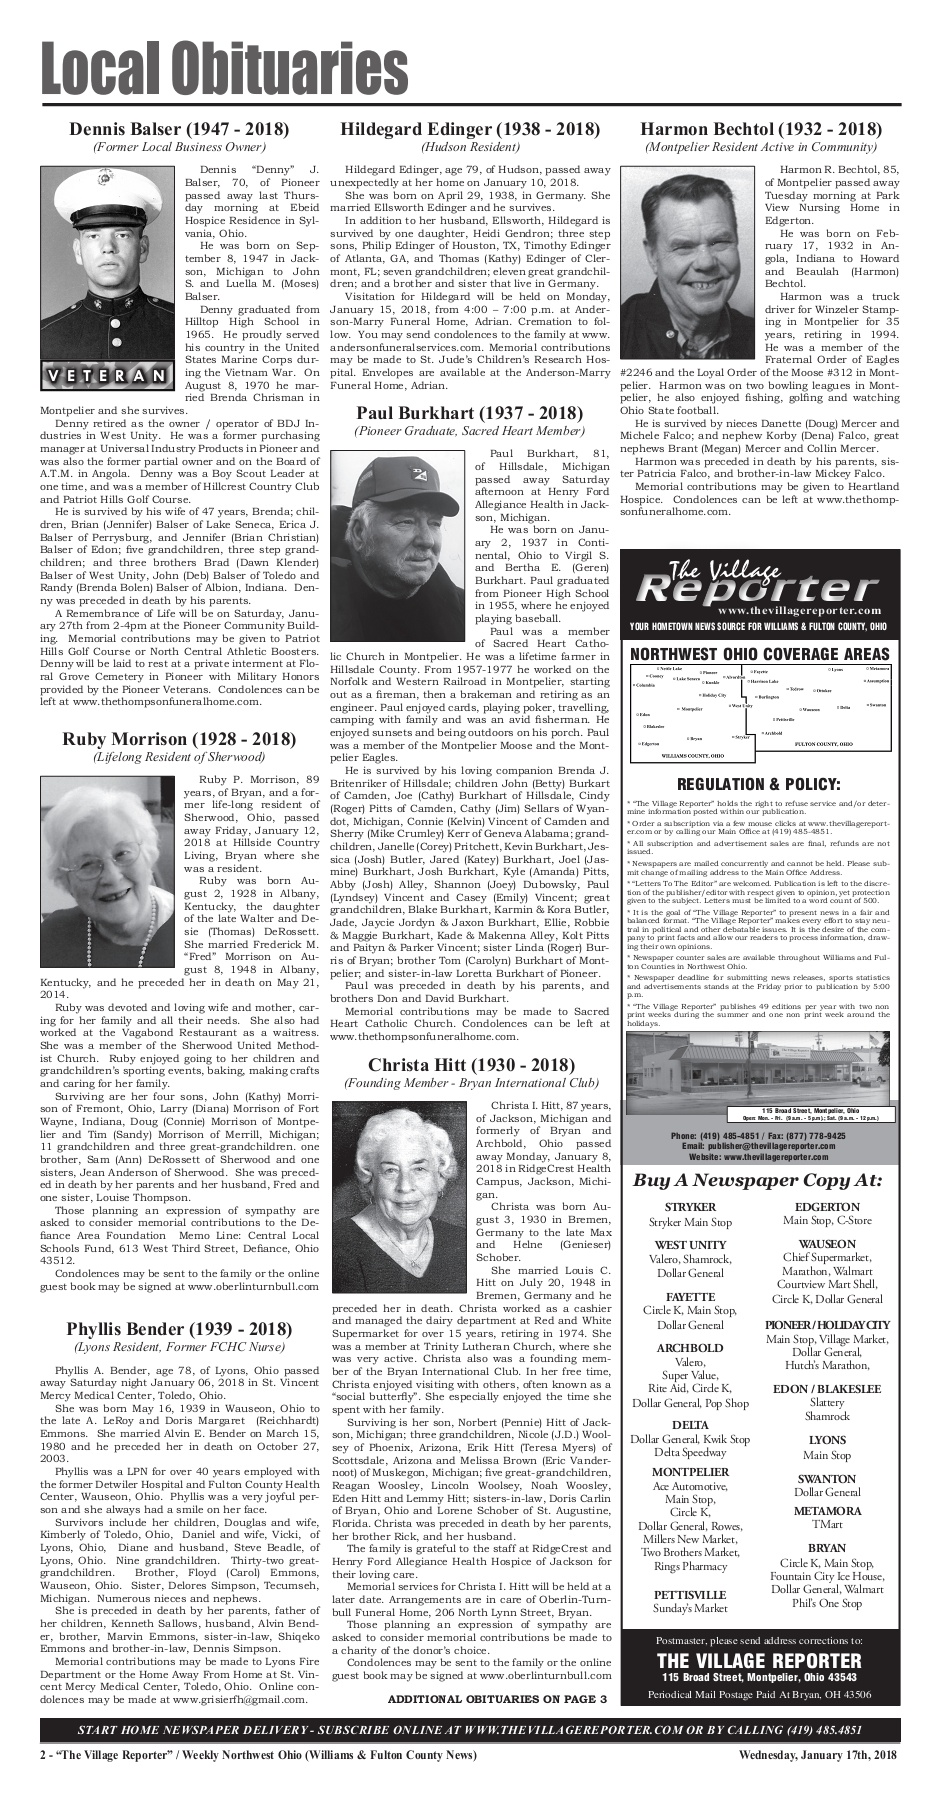 The Village Reporter - January 17th, 2018 Pages 1 - 42